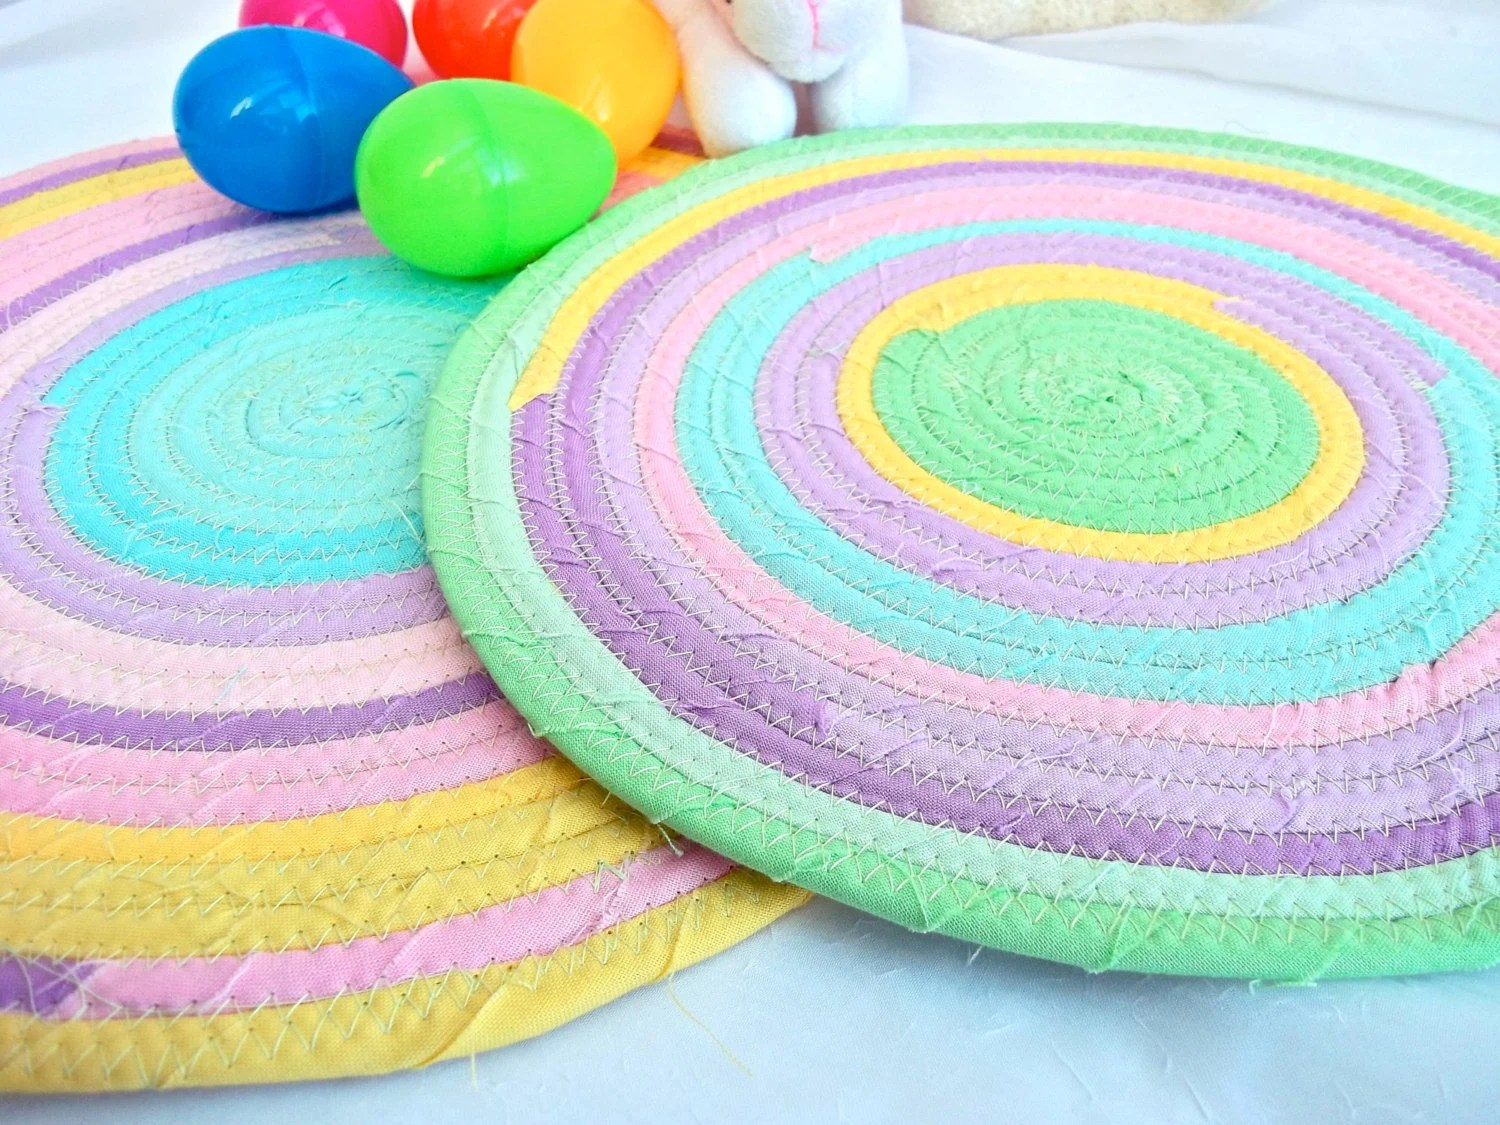 Pastel Easter Trivets, Handmade Easter Hot Pads, Easter Mug Rugs, Table Runners, hand coiled fabric trivets - WexfordTreasures